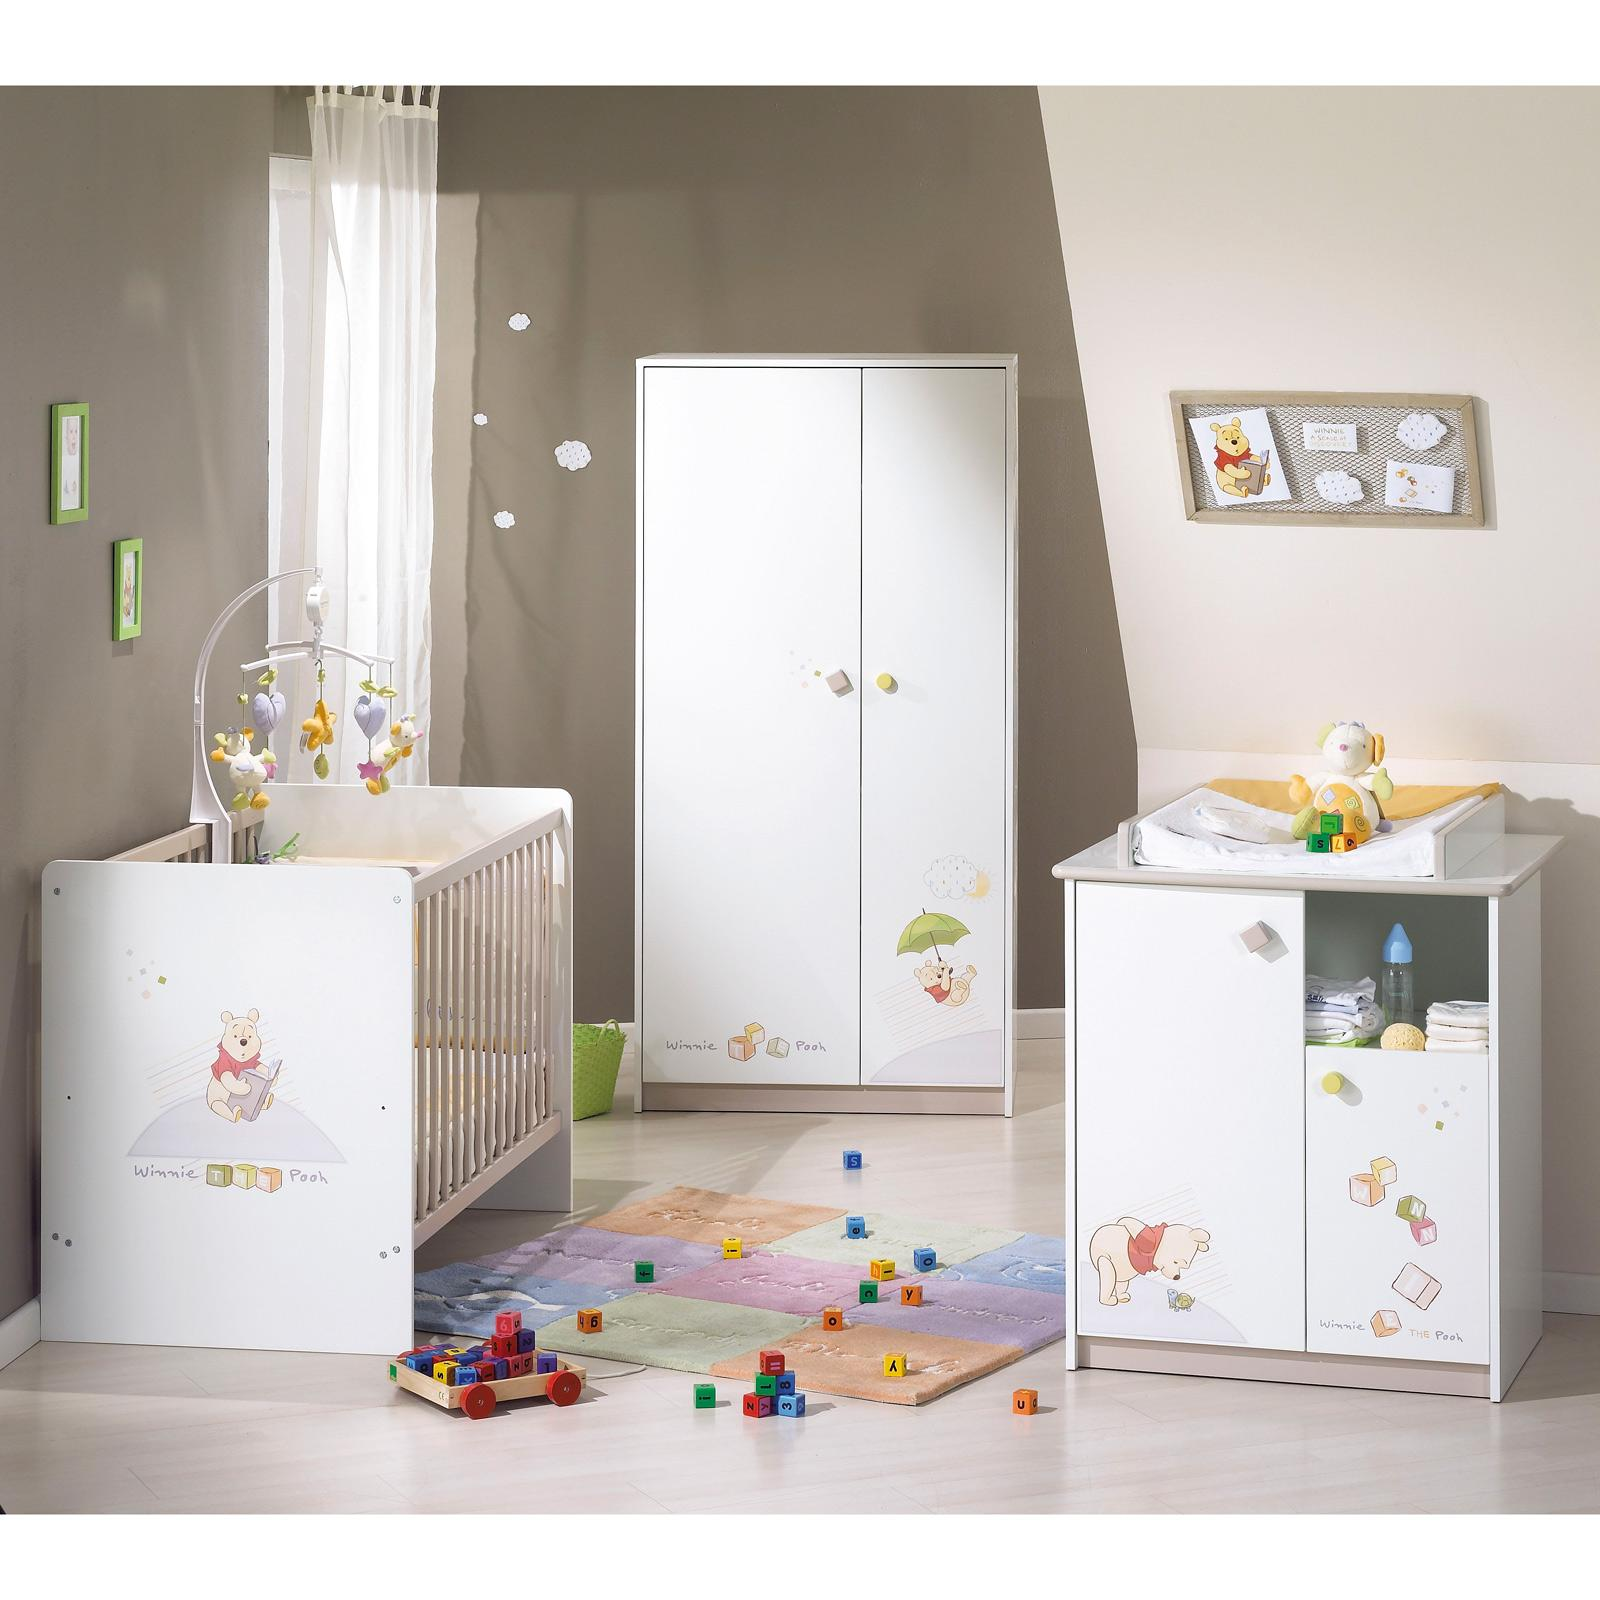 Deco chambre bebe fille winnie for Decoration de chambre de bebe